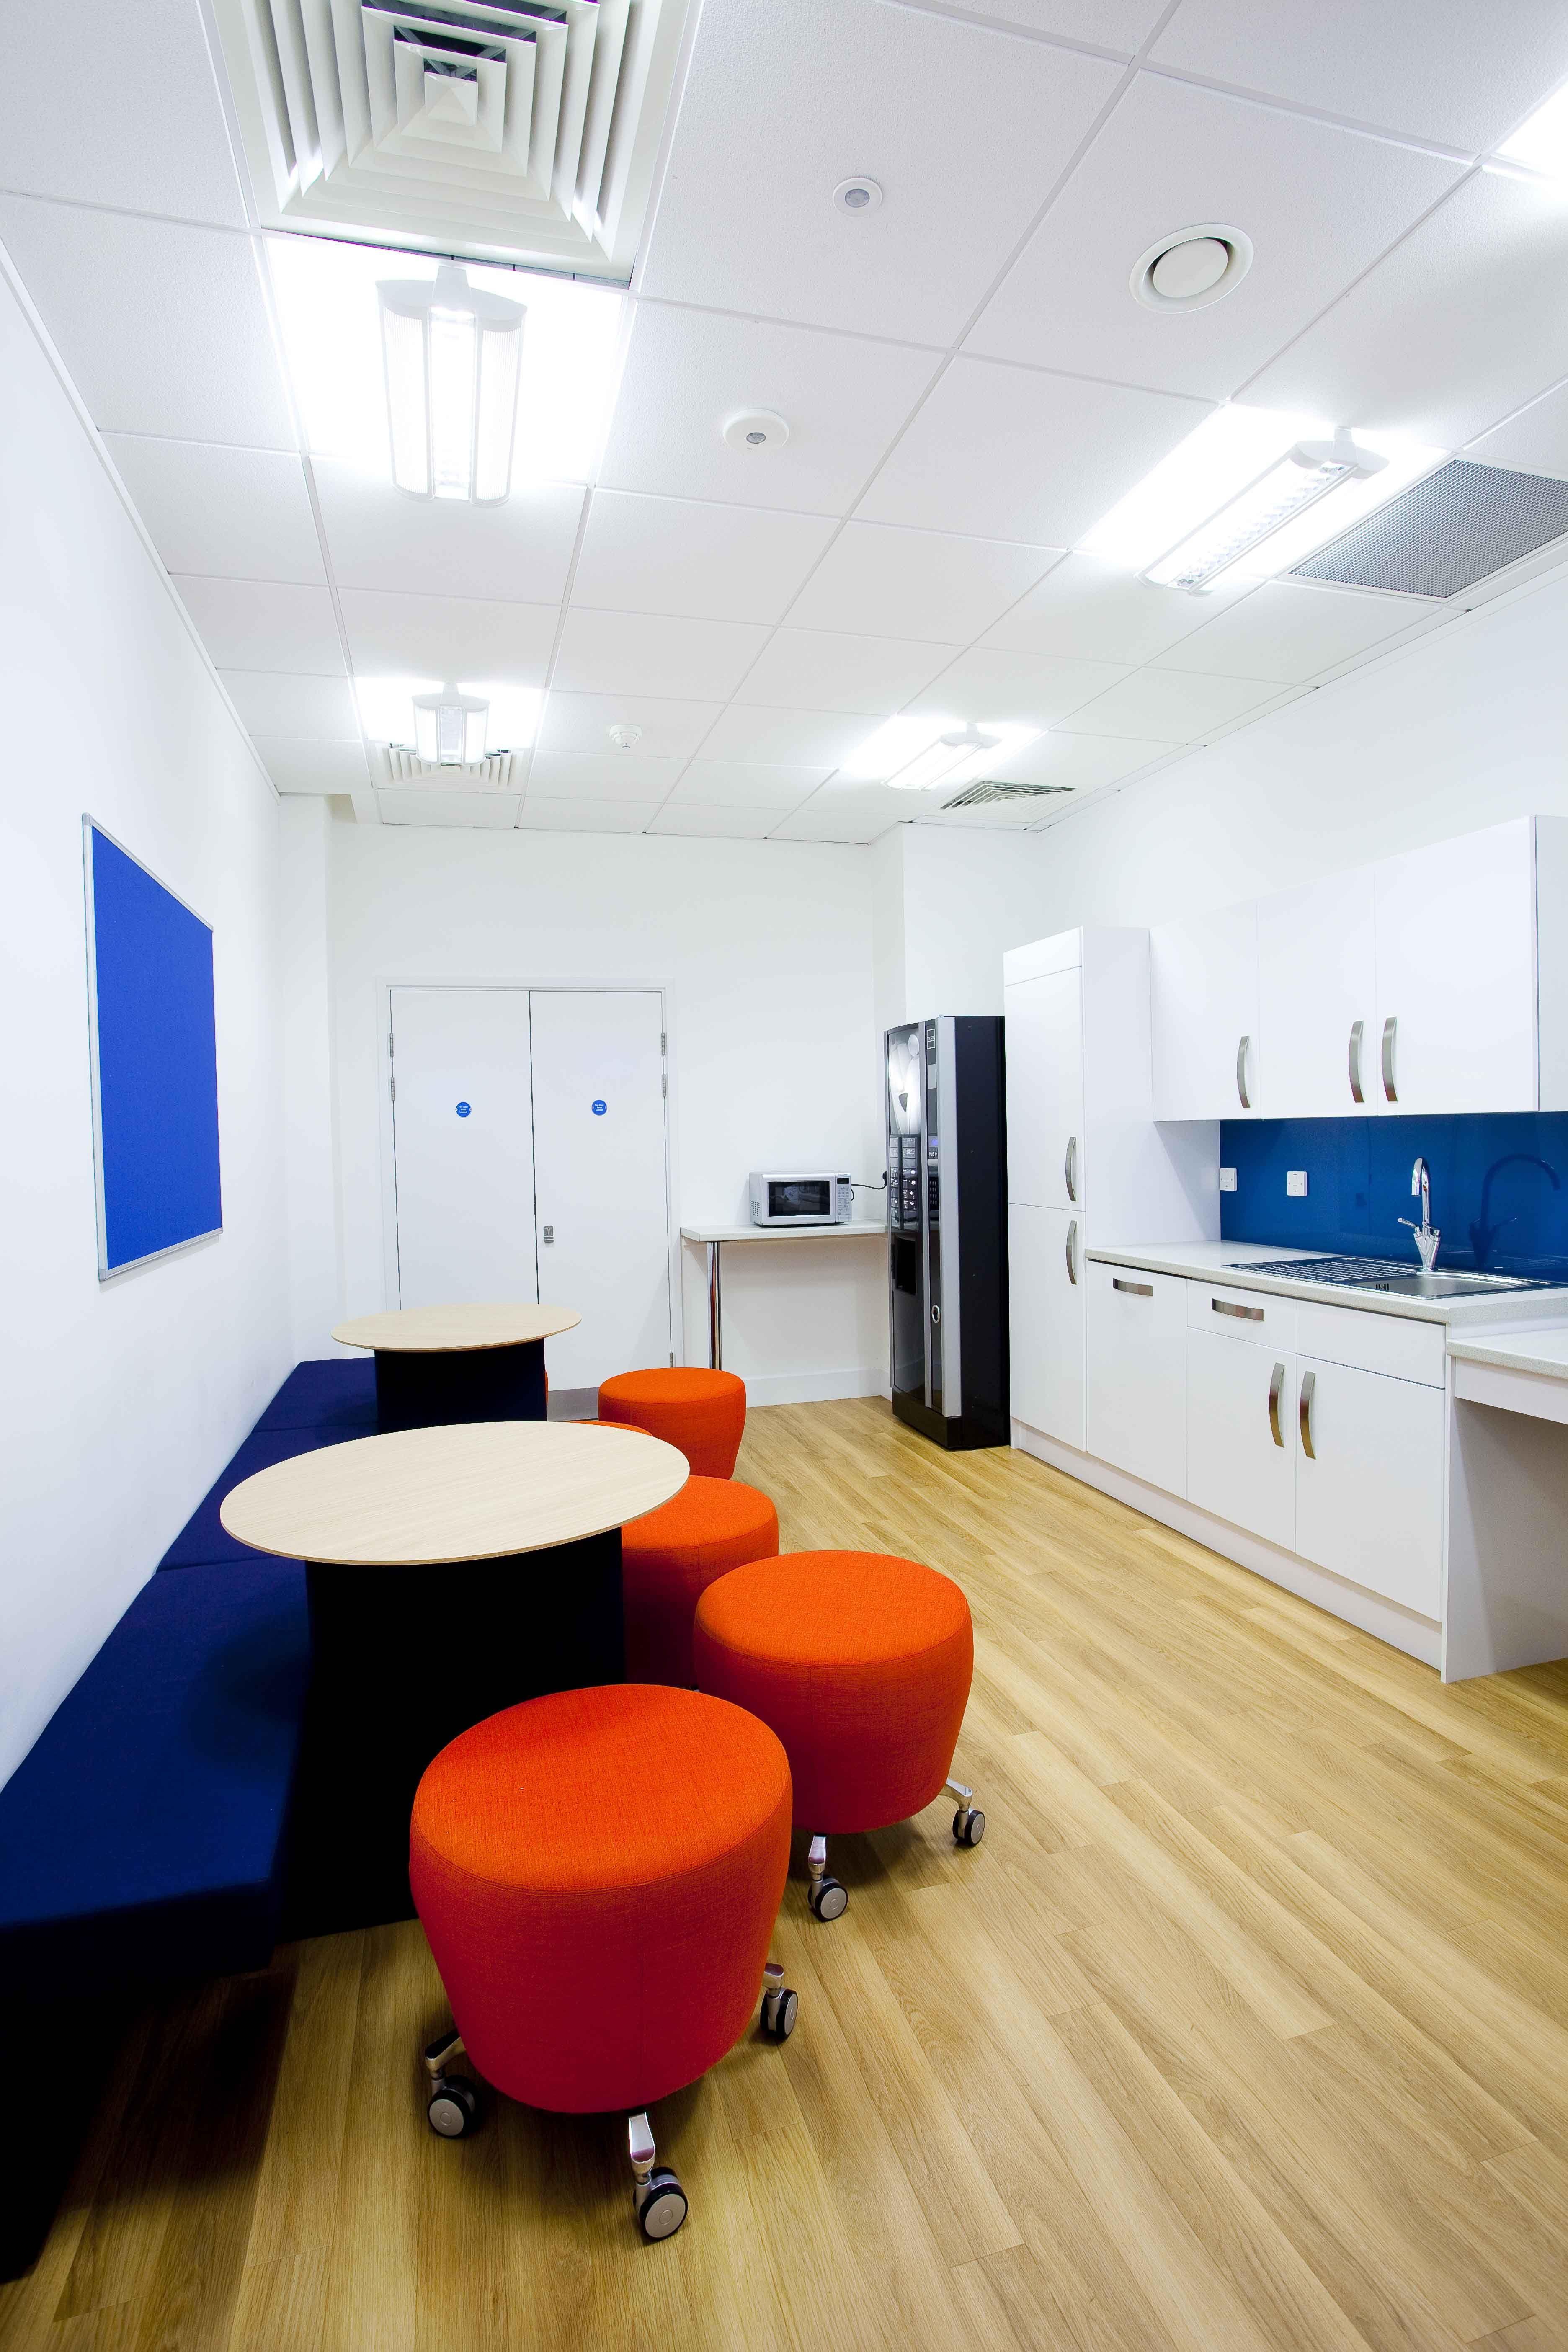 Staff kitchen, Dining area, Interior design, Fit-out, Office space ...